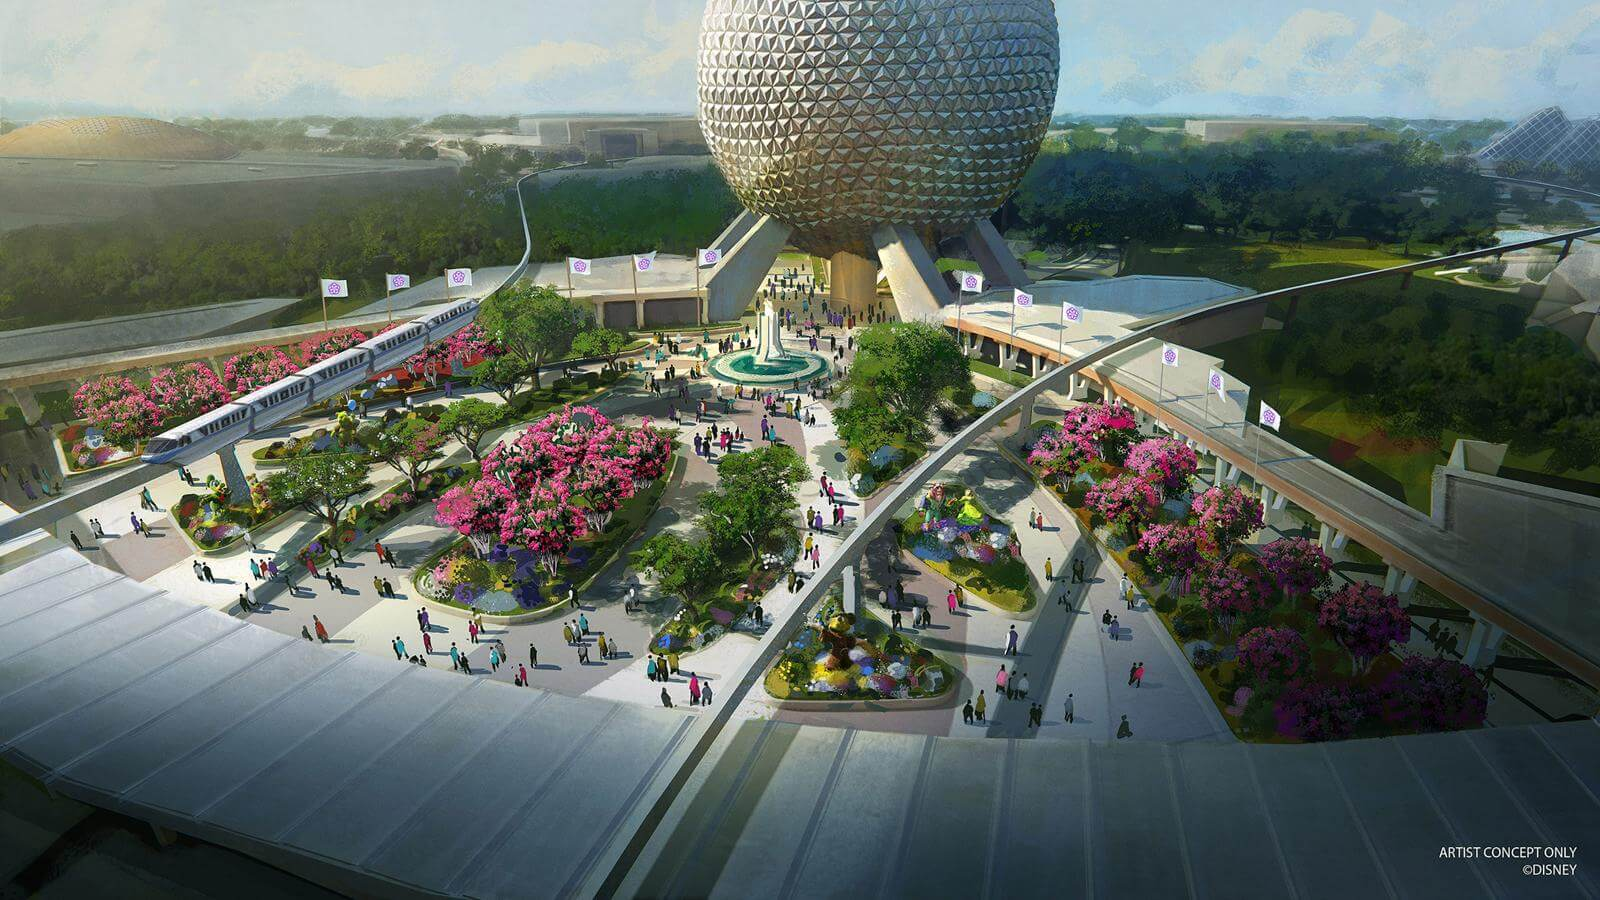 New Concept Art For Epcot Entrance Revealed